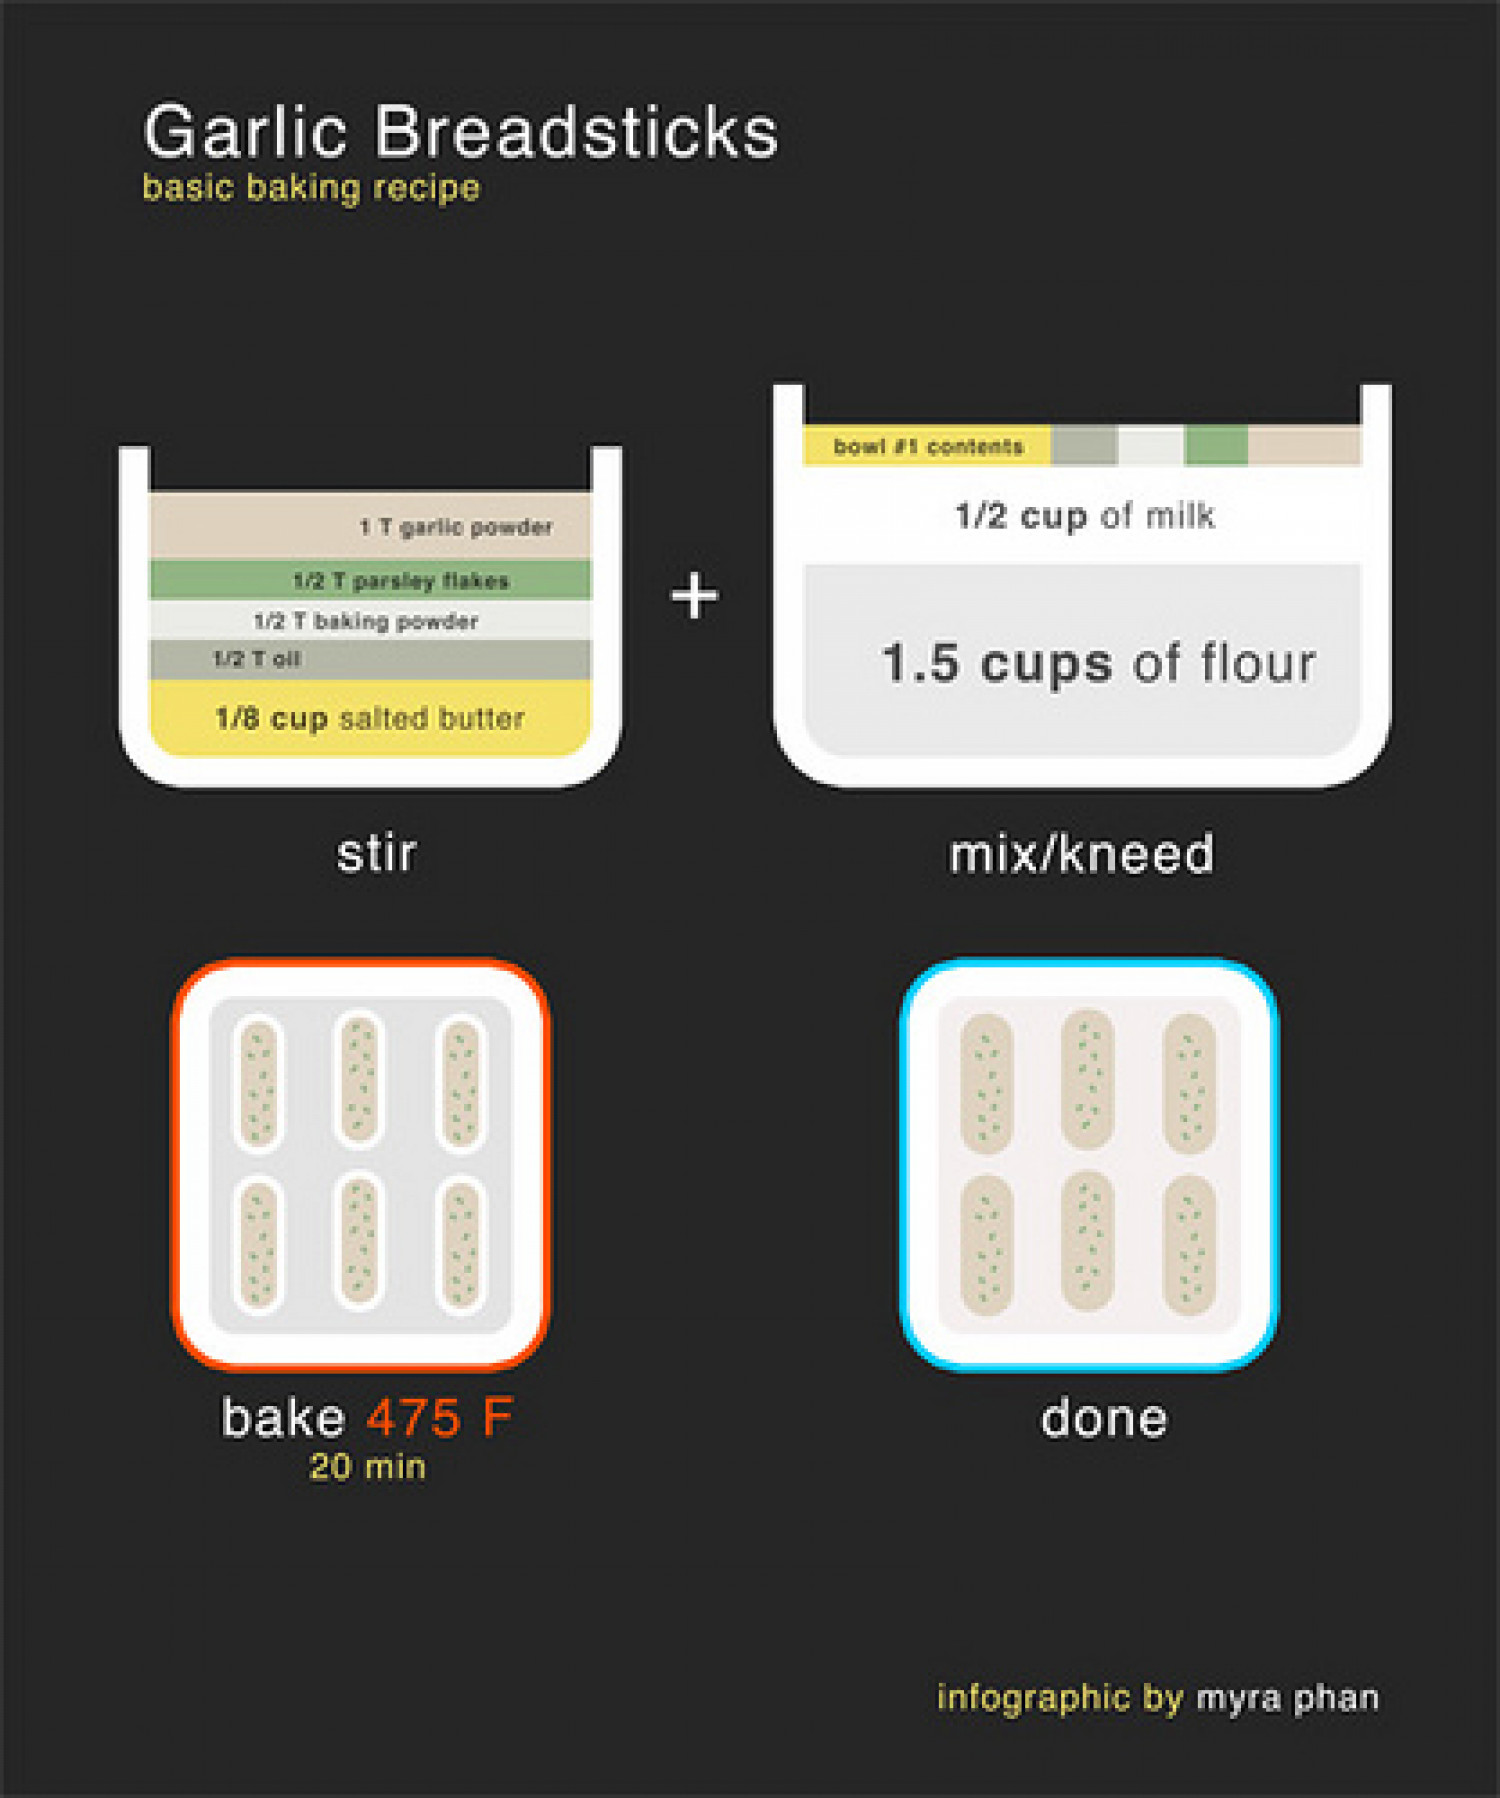 Garlic Breadsticks Infographic